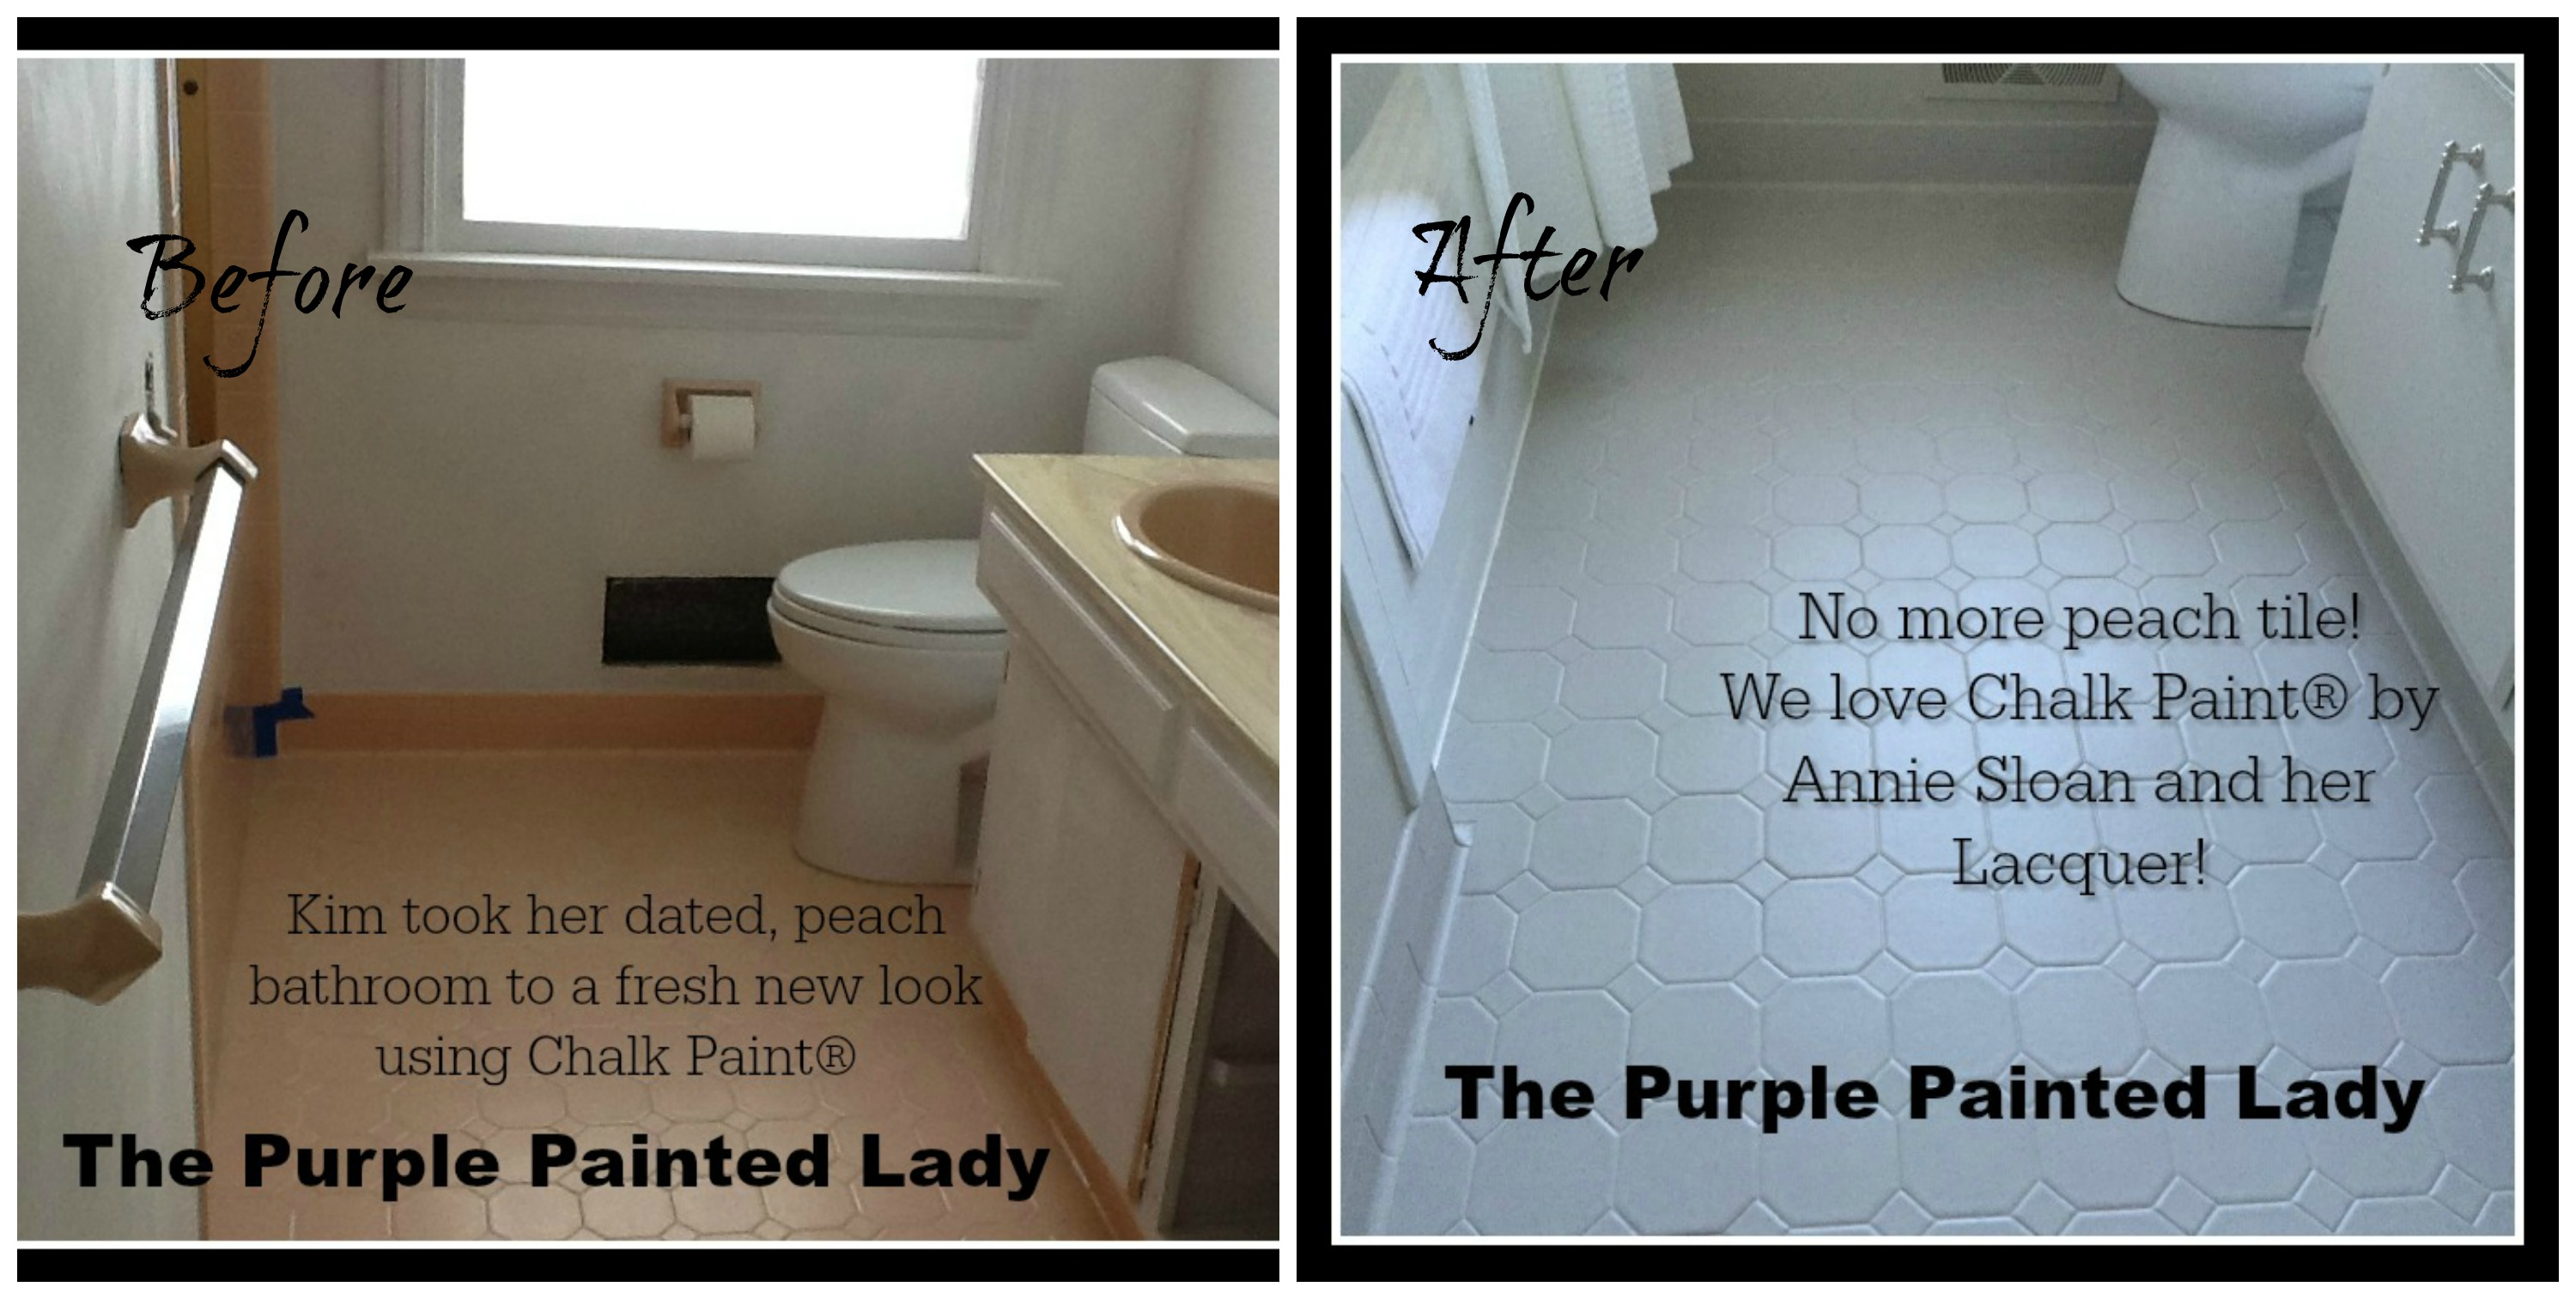 Painting tile in the bathroom with chalk paint the purple the purple painted lady kim gray before after chalk paint annie sloan doublecrazyfo Choice Image